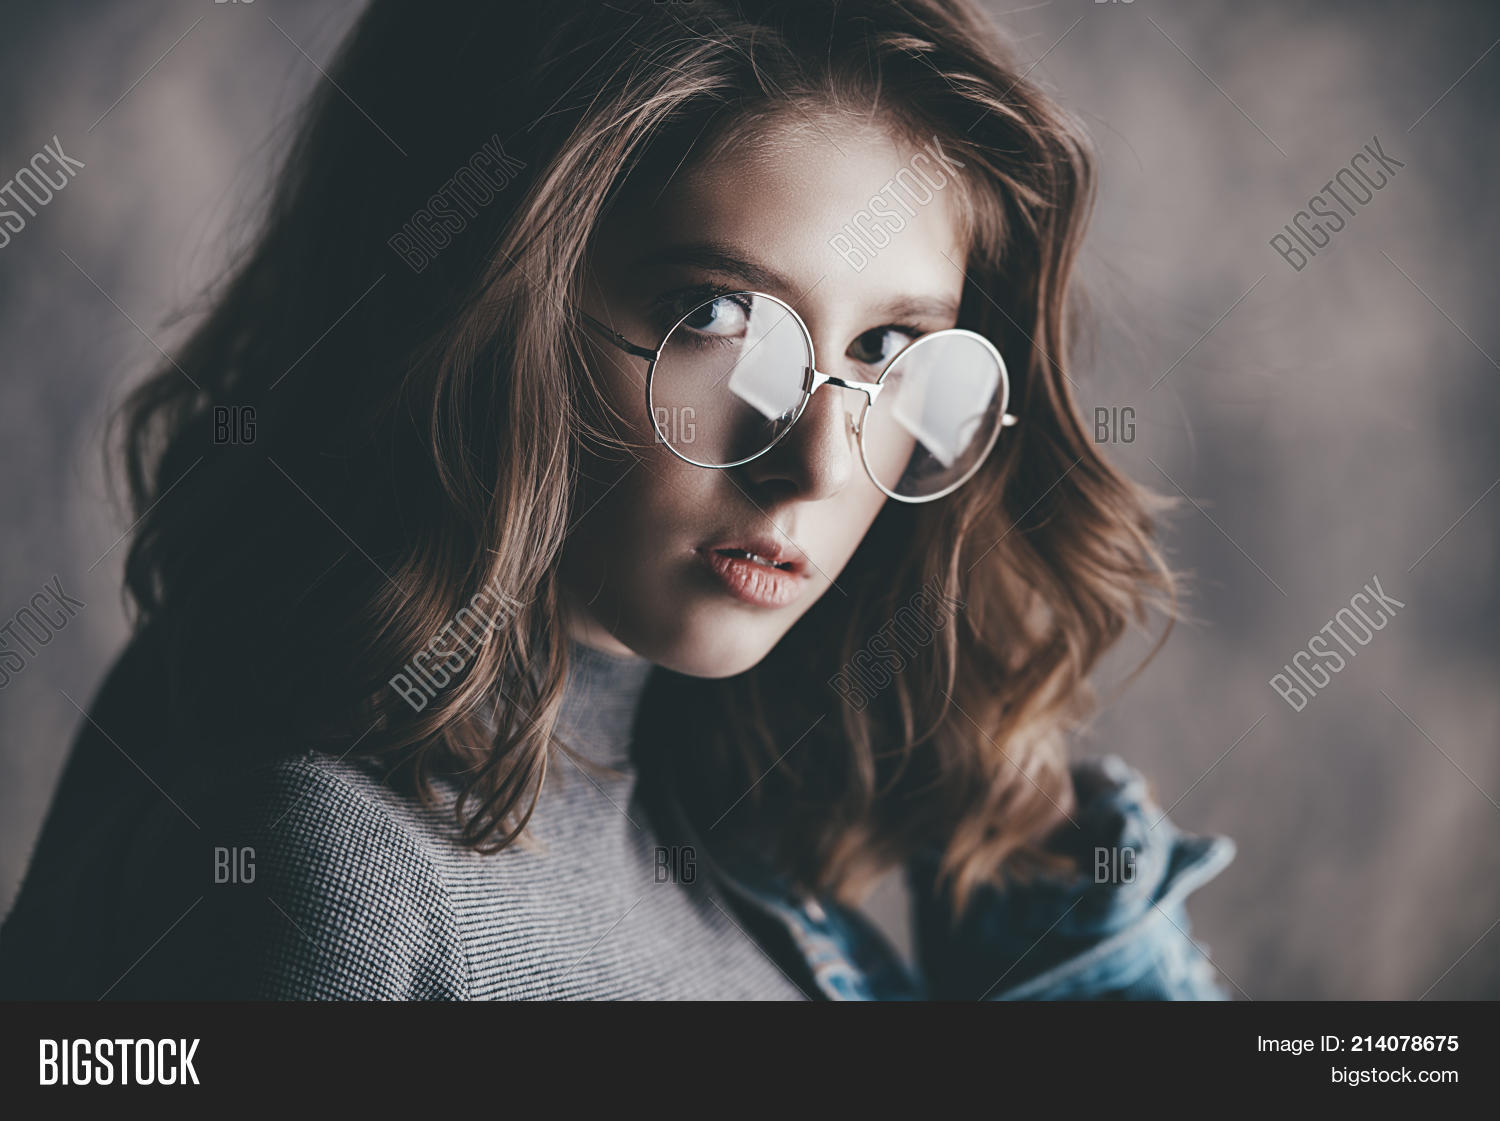 27a94abd62 Portrait of a cute girl teenager wearing spectacles. Glasses for a modern  young generation.